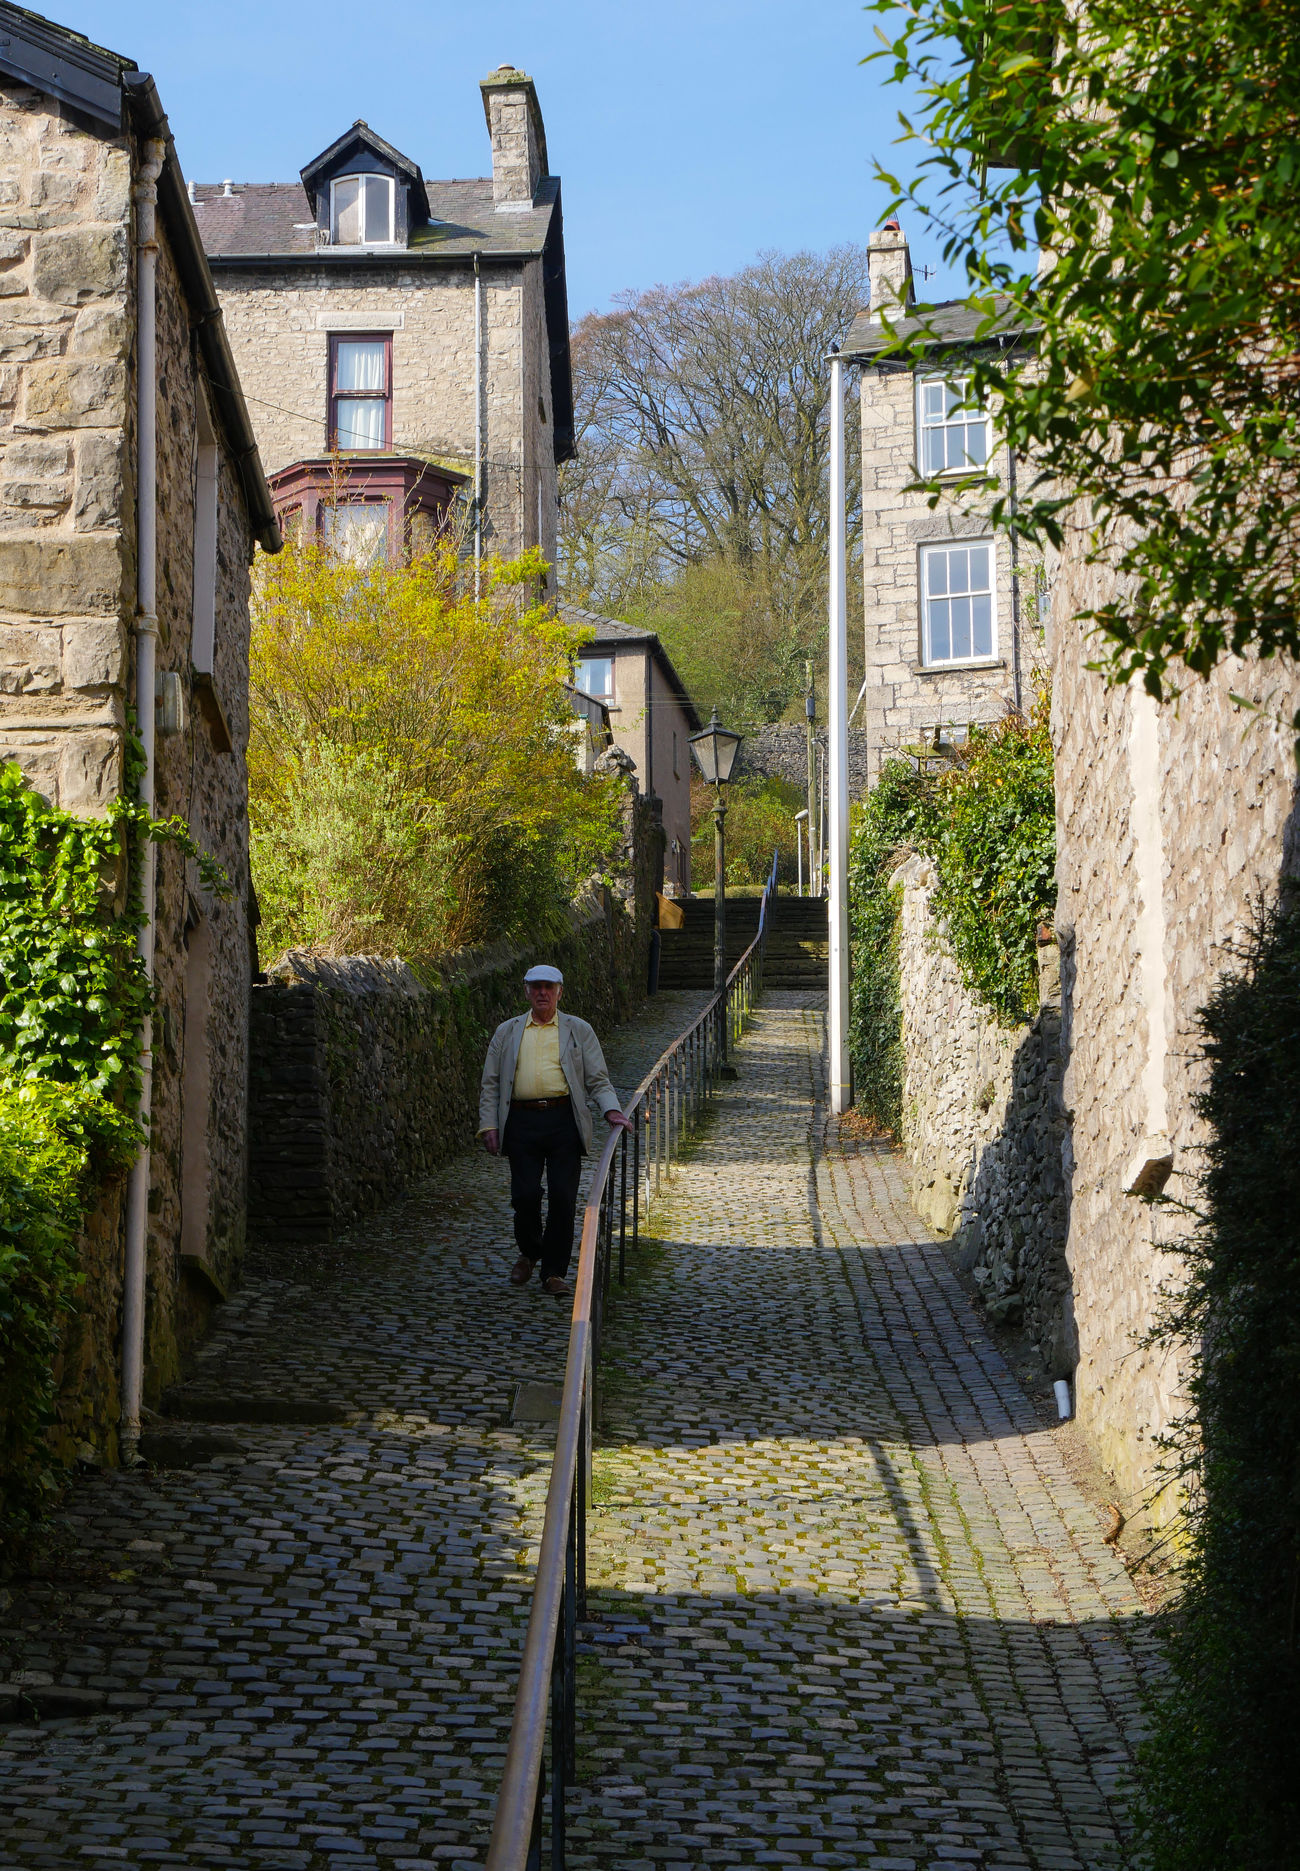 Lane Steep Hill Stone Sets Cobble Stones Gentleman  Walking Railings Terraced Houses Sunshine Shadows Stone Walls Windows Architecture Rooftops